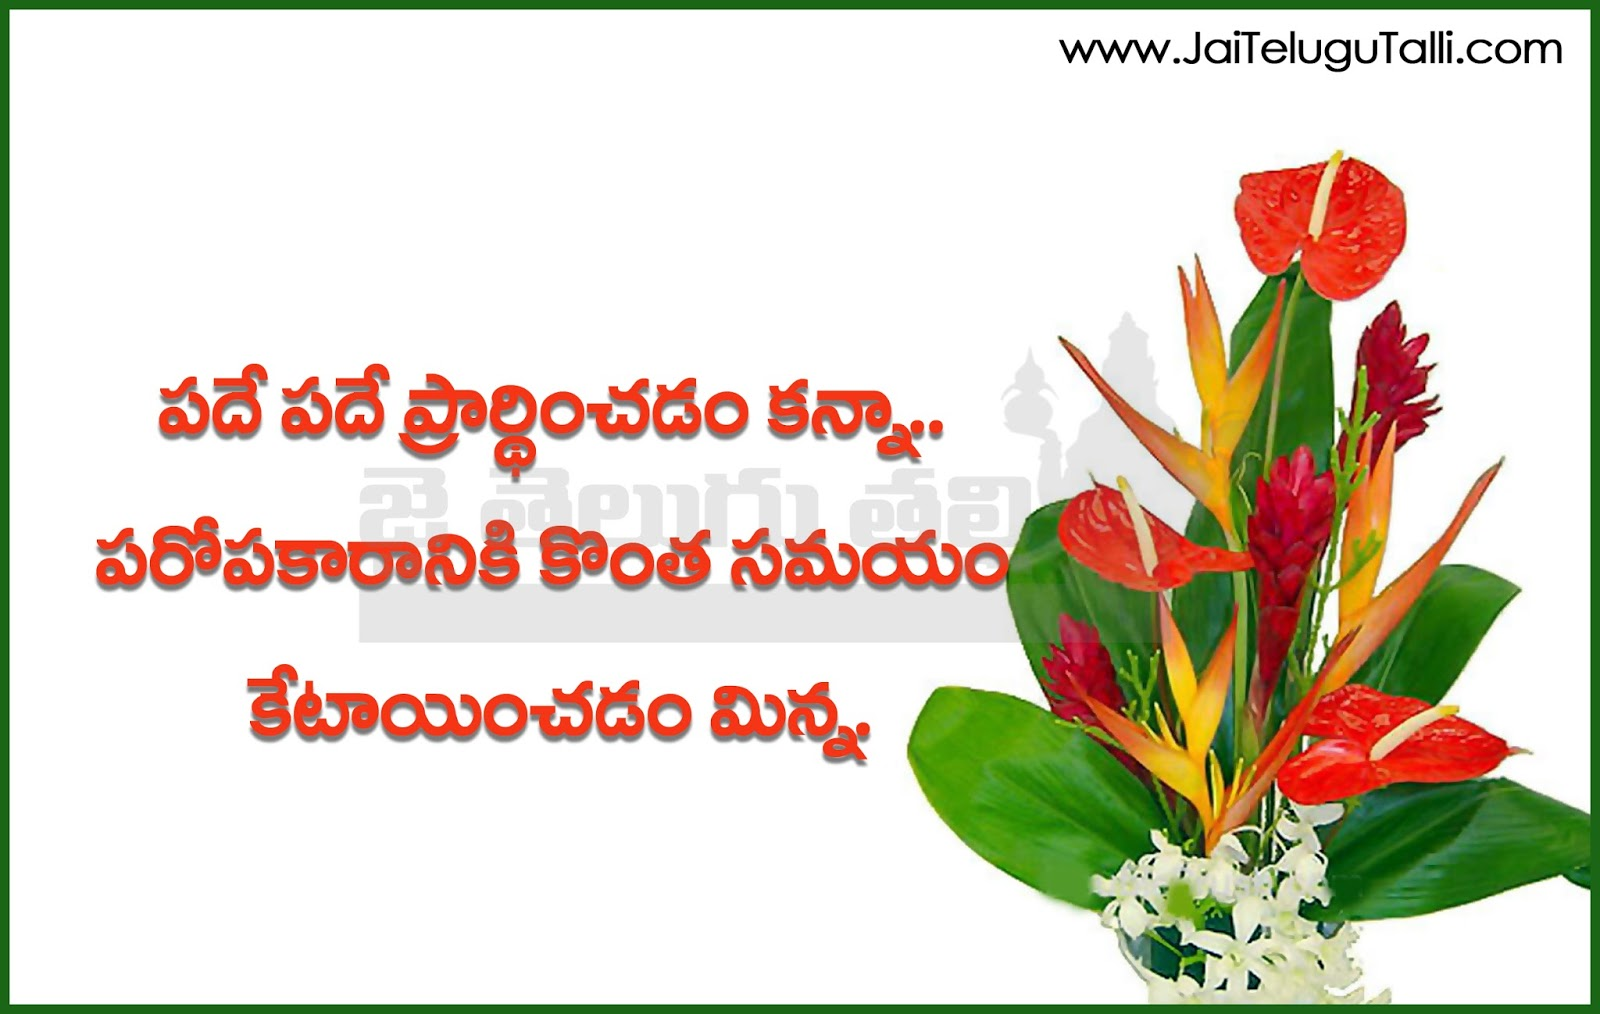 Beautiful flowers images with quotes in telugu gendiswallpaper best telugu quotations and images with beautiful hd flower izmirmasajfo Image collections